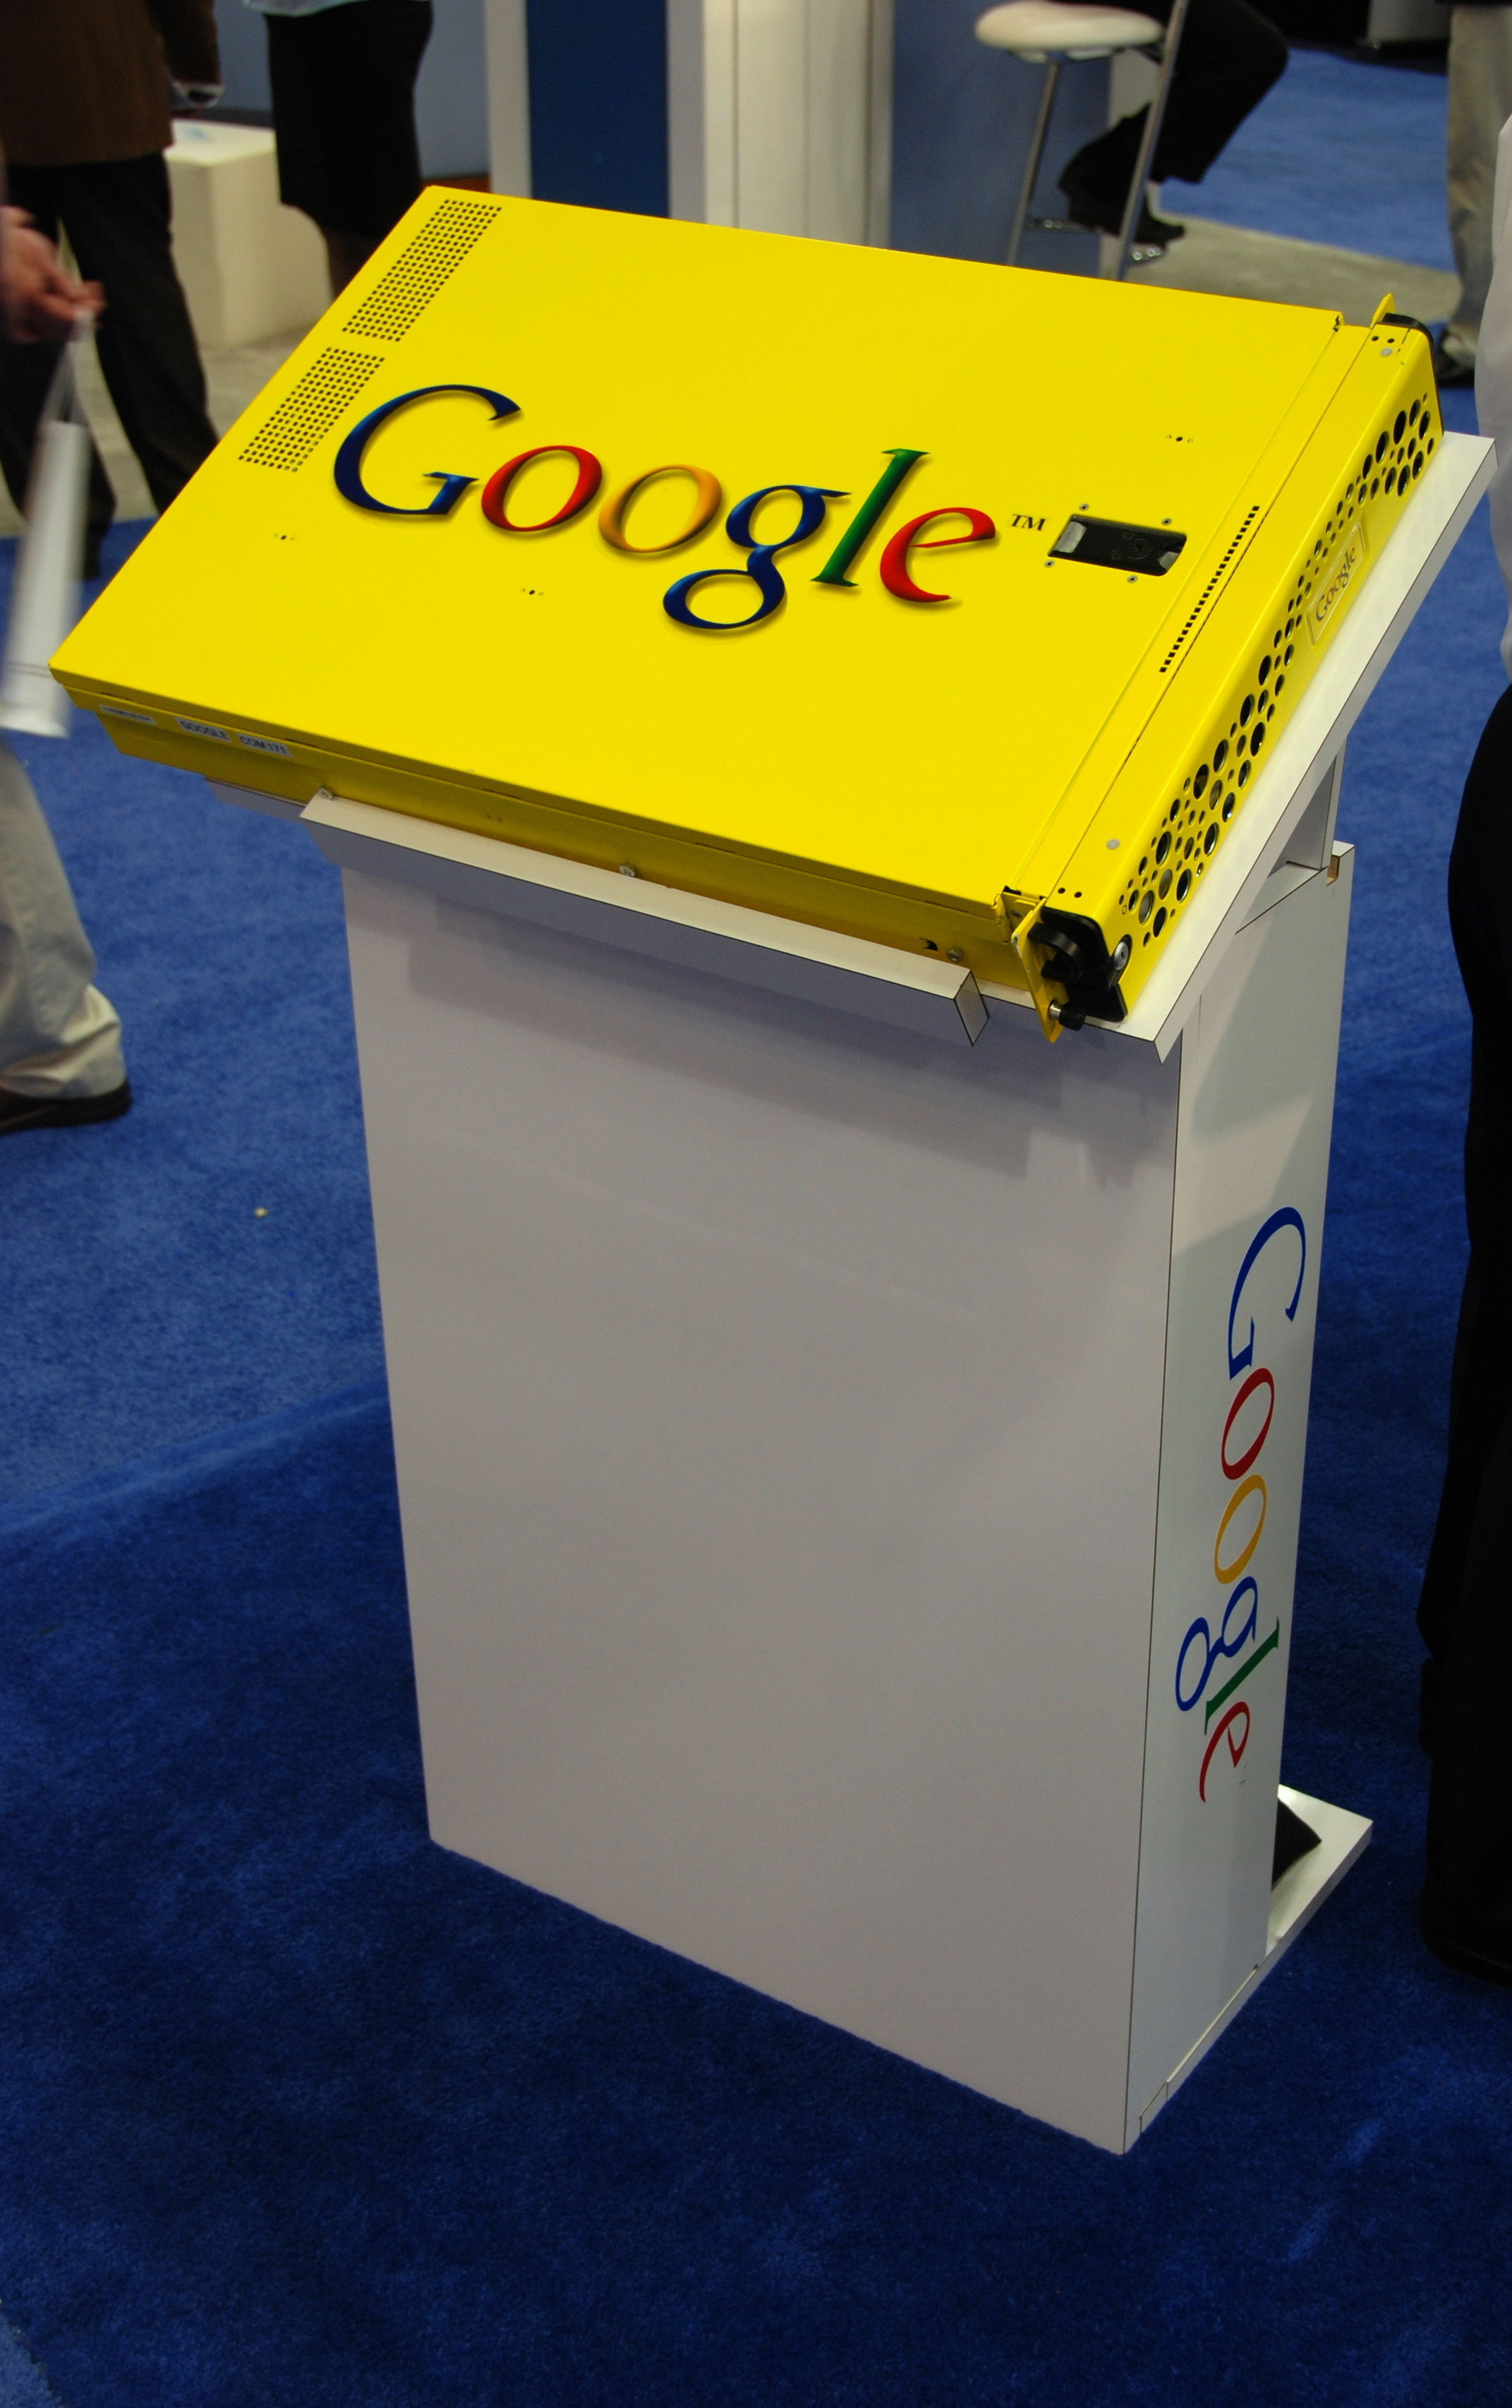 Google's search appliance at the 2008 RSA Conference